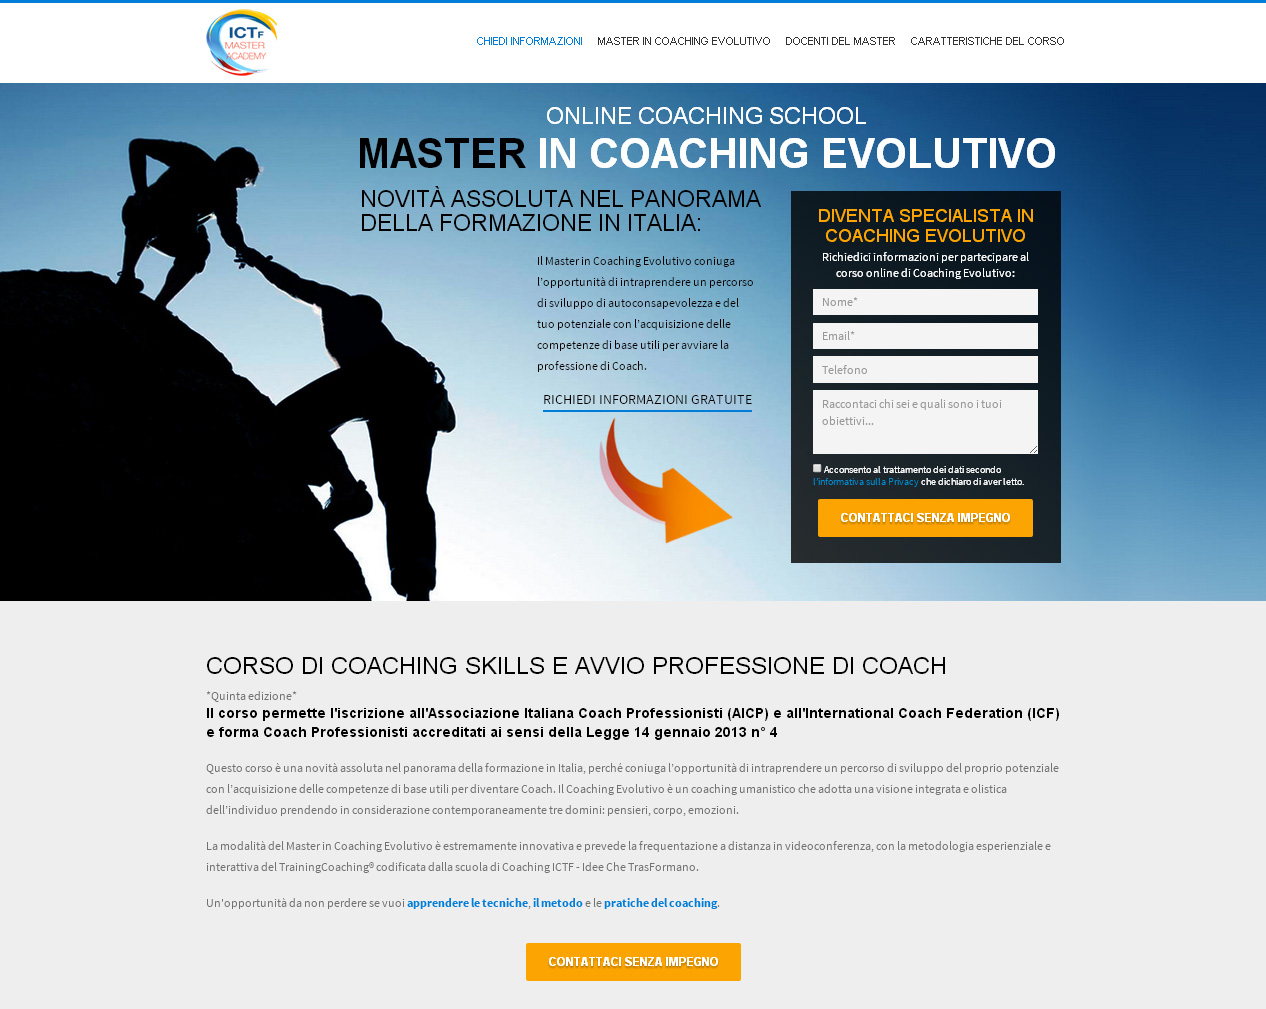 Master in Coaching Evolutivo: campagna AdWords